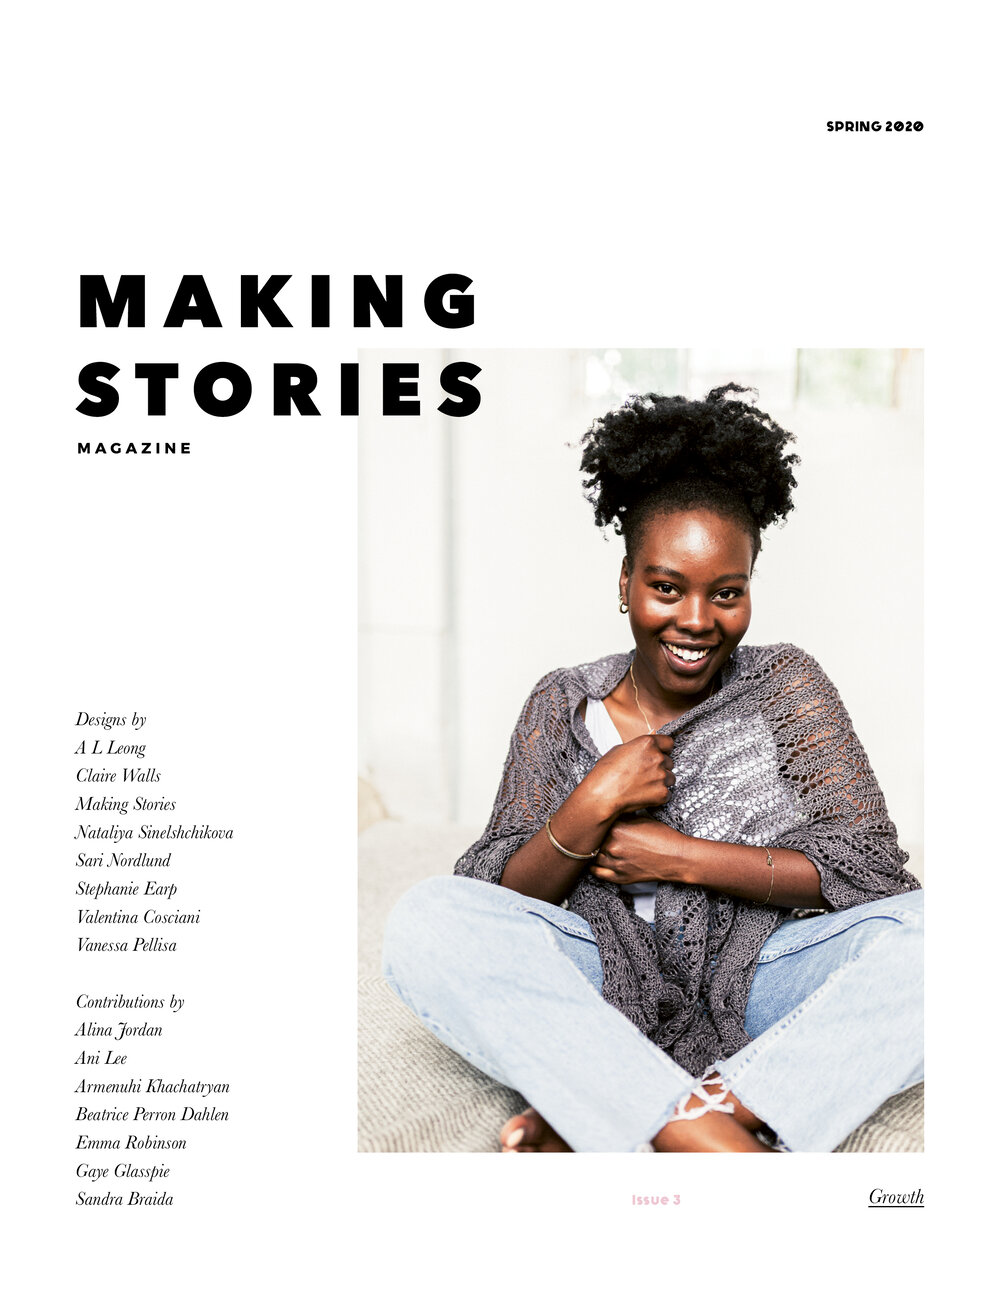 Making Stories Issue 3 Growth